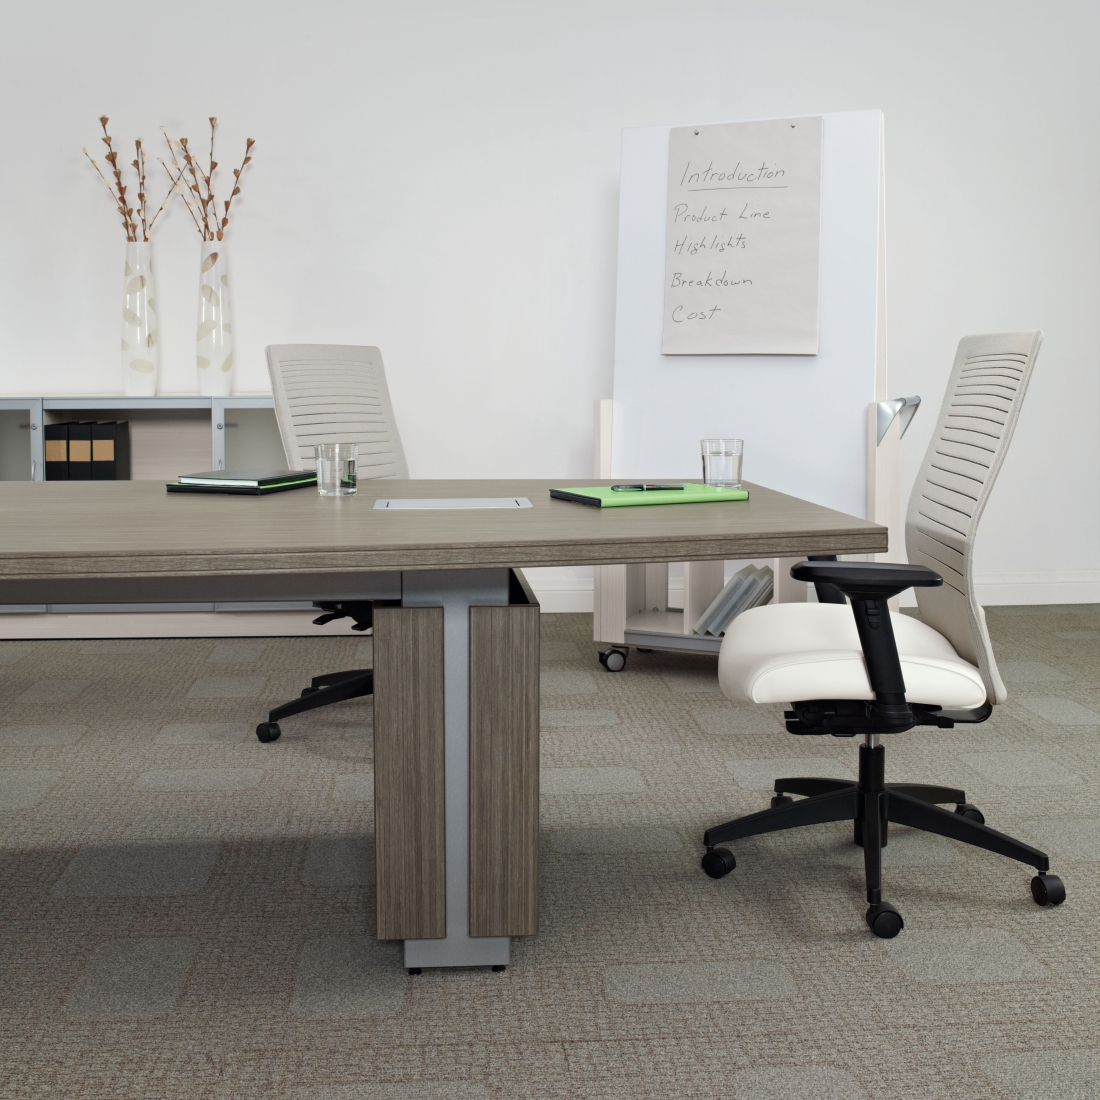 Office Anything Furniture Blog How To Create A High Tech